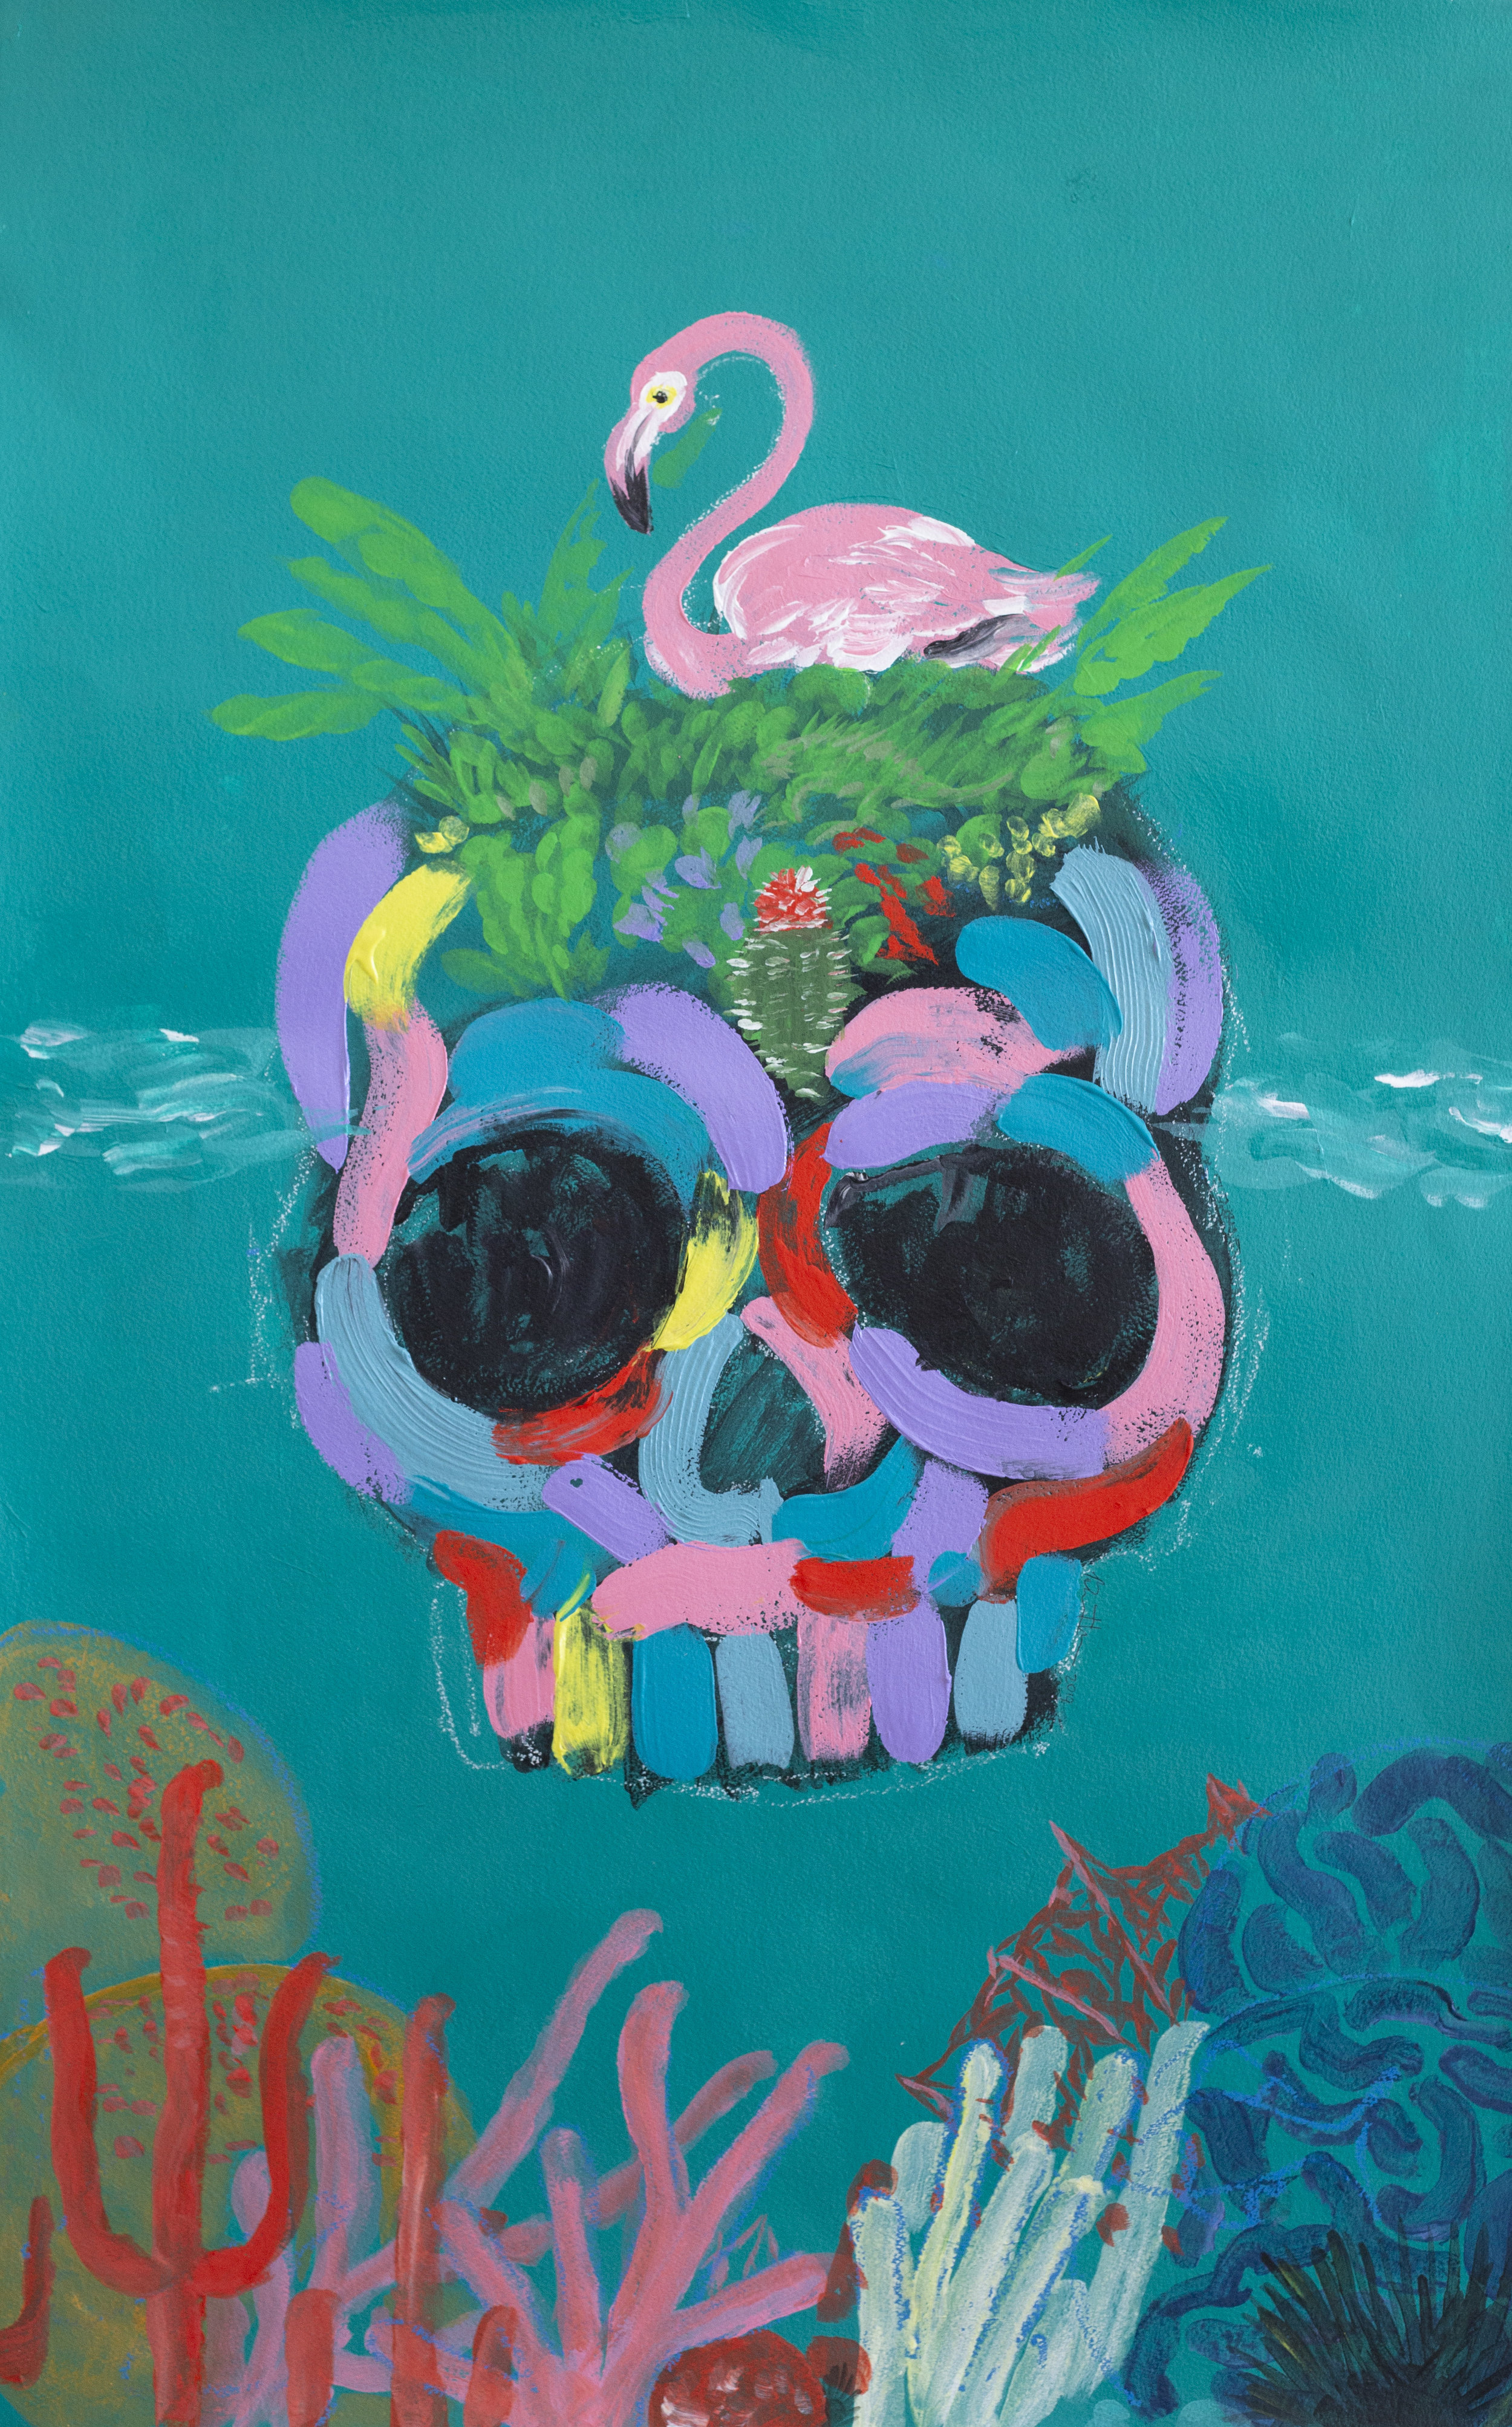 The inaugural Turks & Caicos Film Festival poster by Bradley Theodore